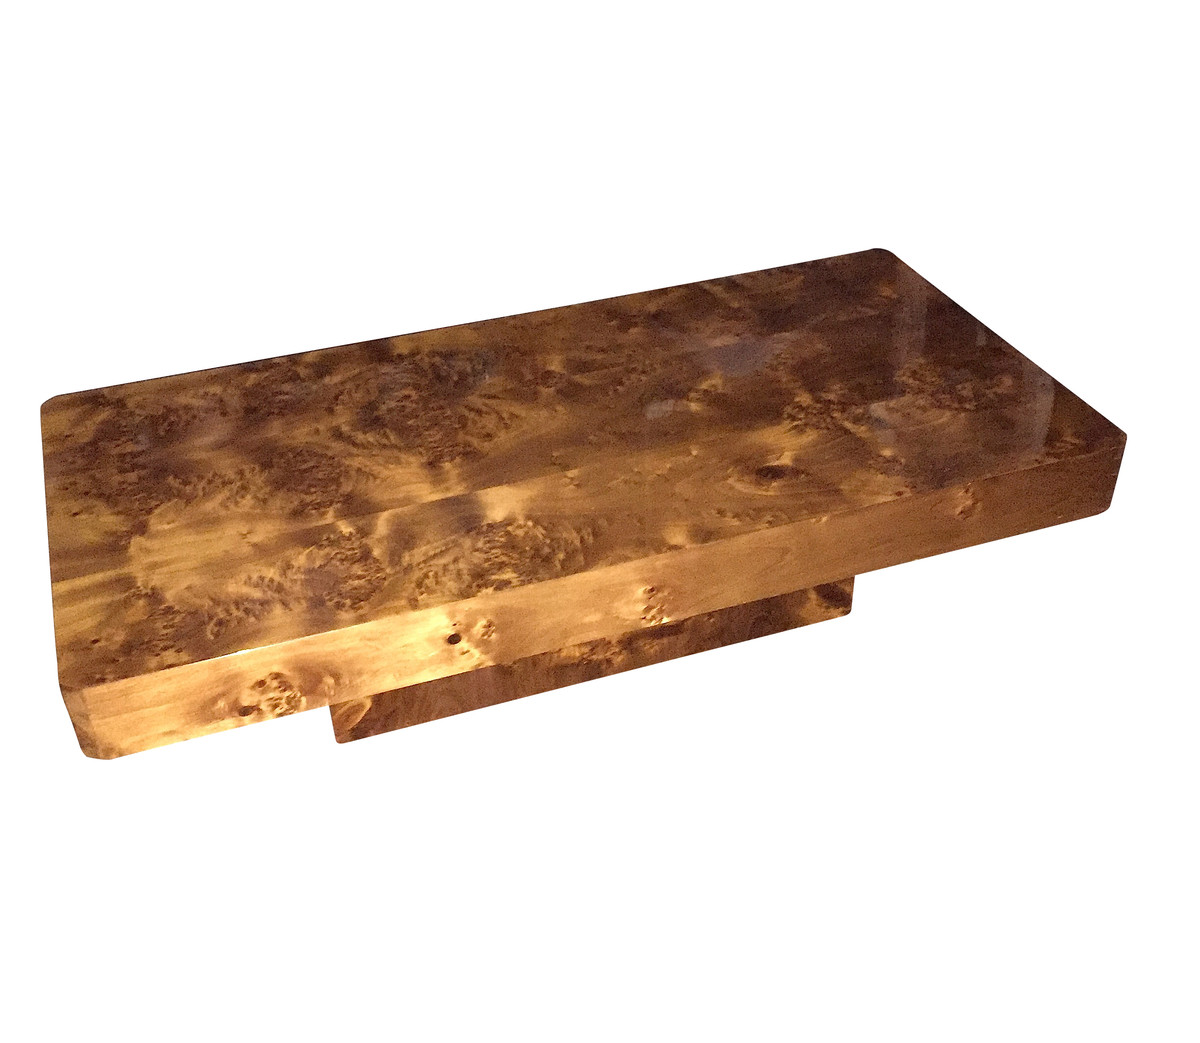 Burl Coffee Table: 1970's French Burl Wood Coffee Table